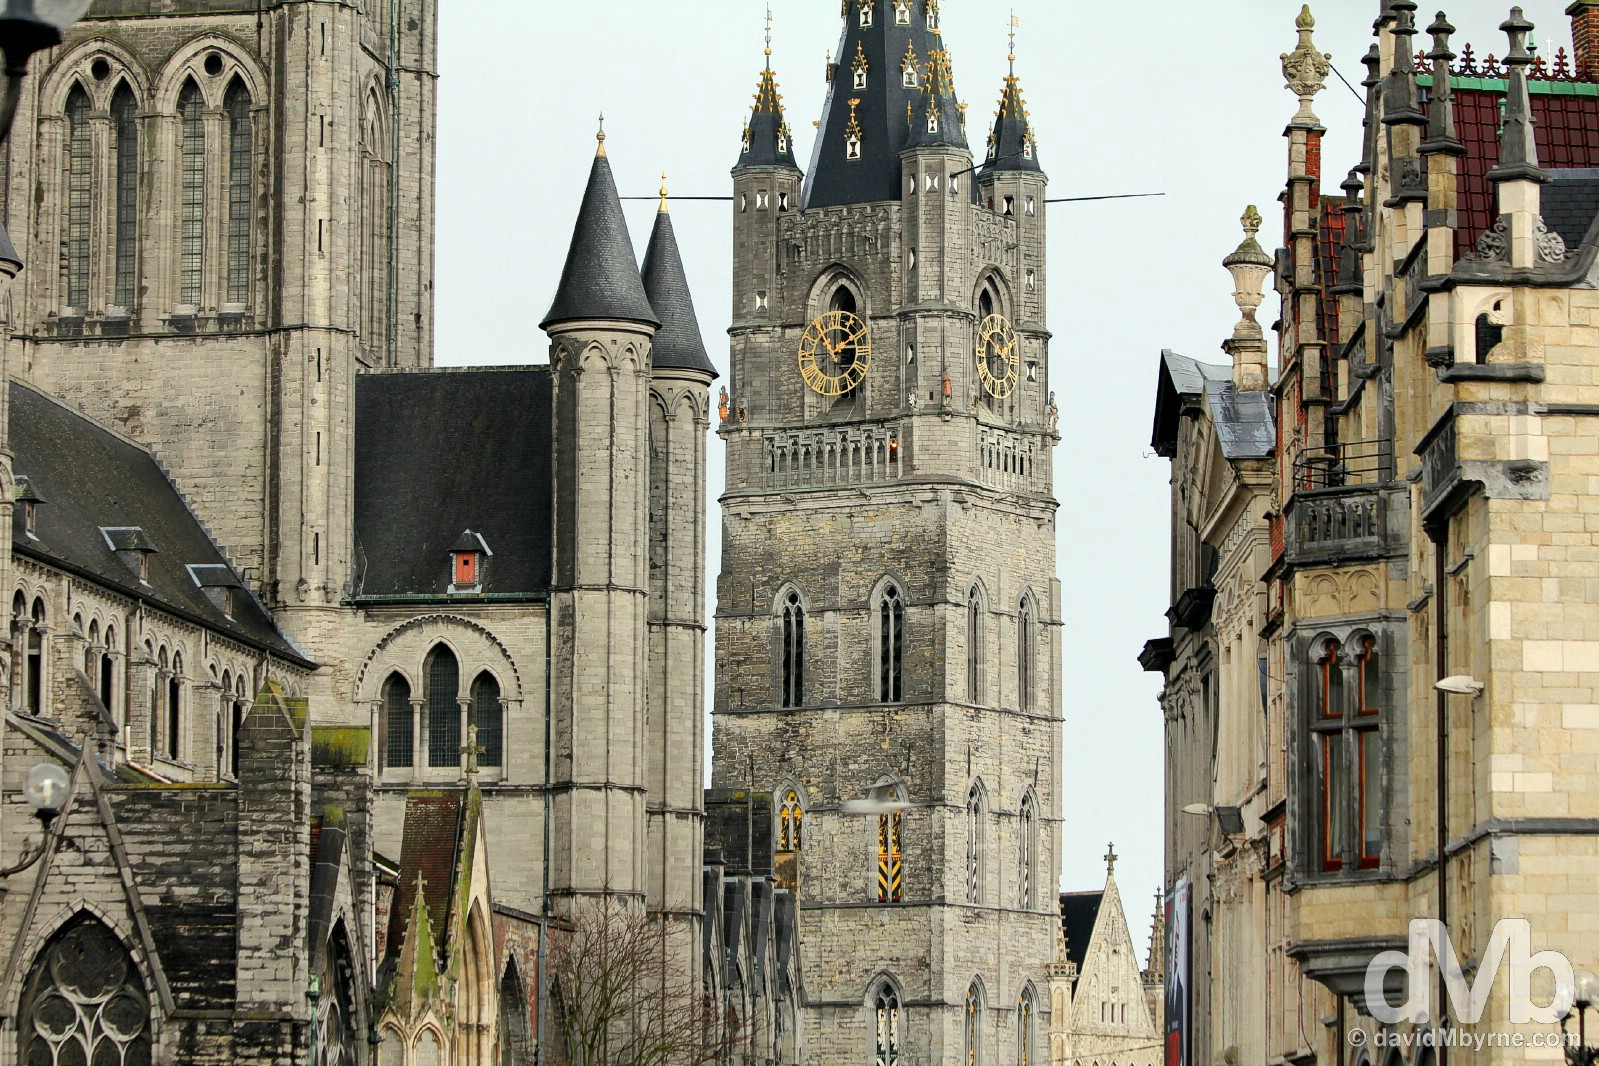 Sint Niklaaskerk/St. Nicholas' Church, left, & the UNESCO-listed Belfry in Ghent, centre, as seen from the St Michielsburh bridge over the Leie River in Ghent, western Flanders, Belgium. January 15, 2016.